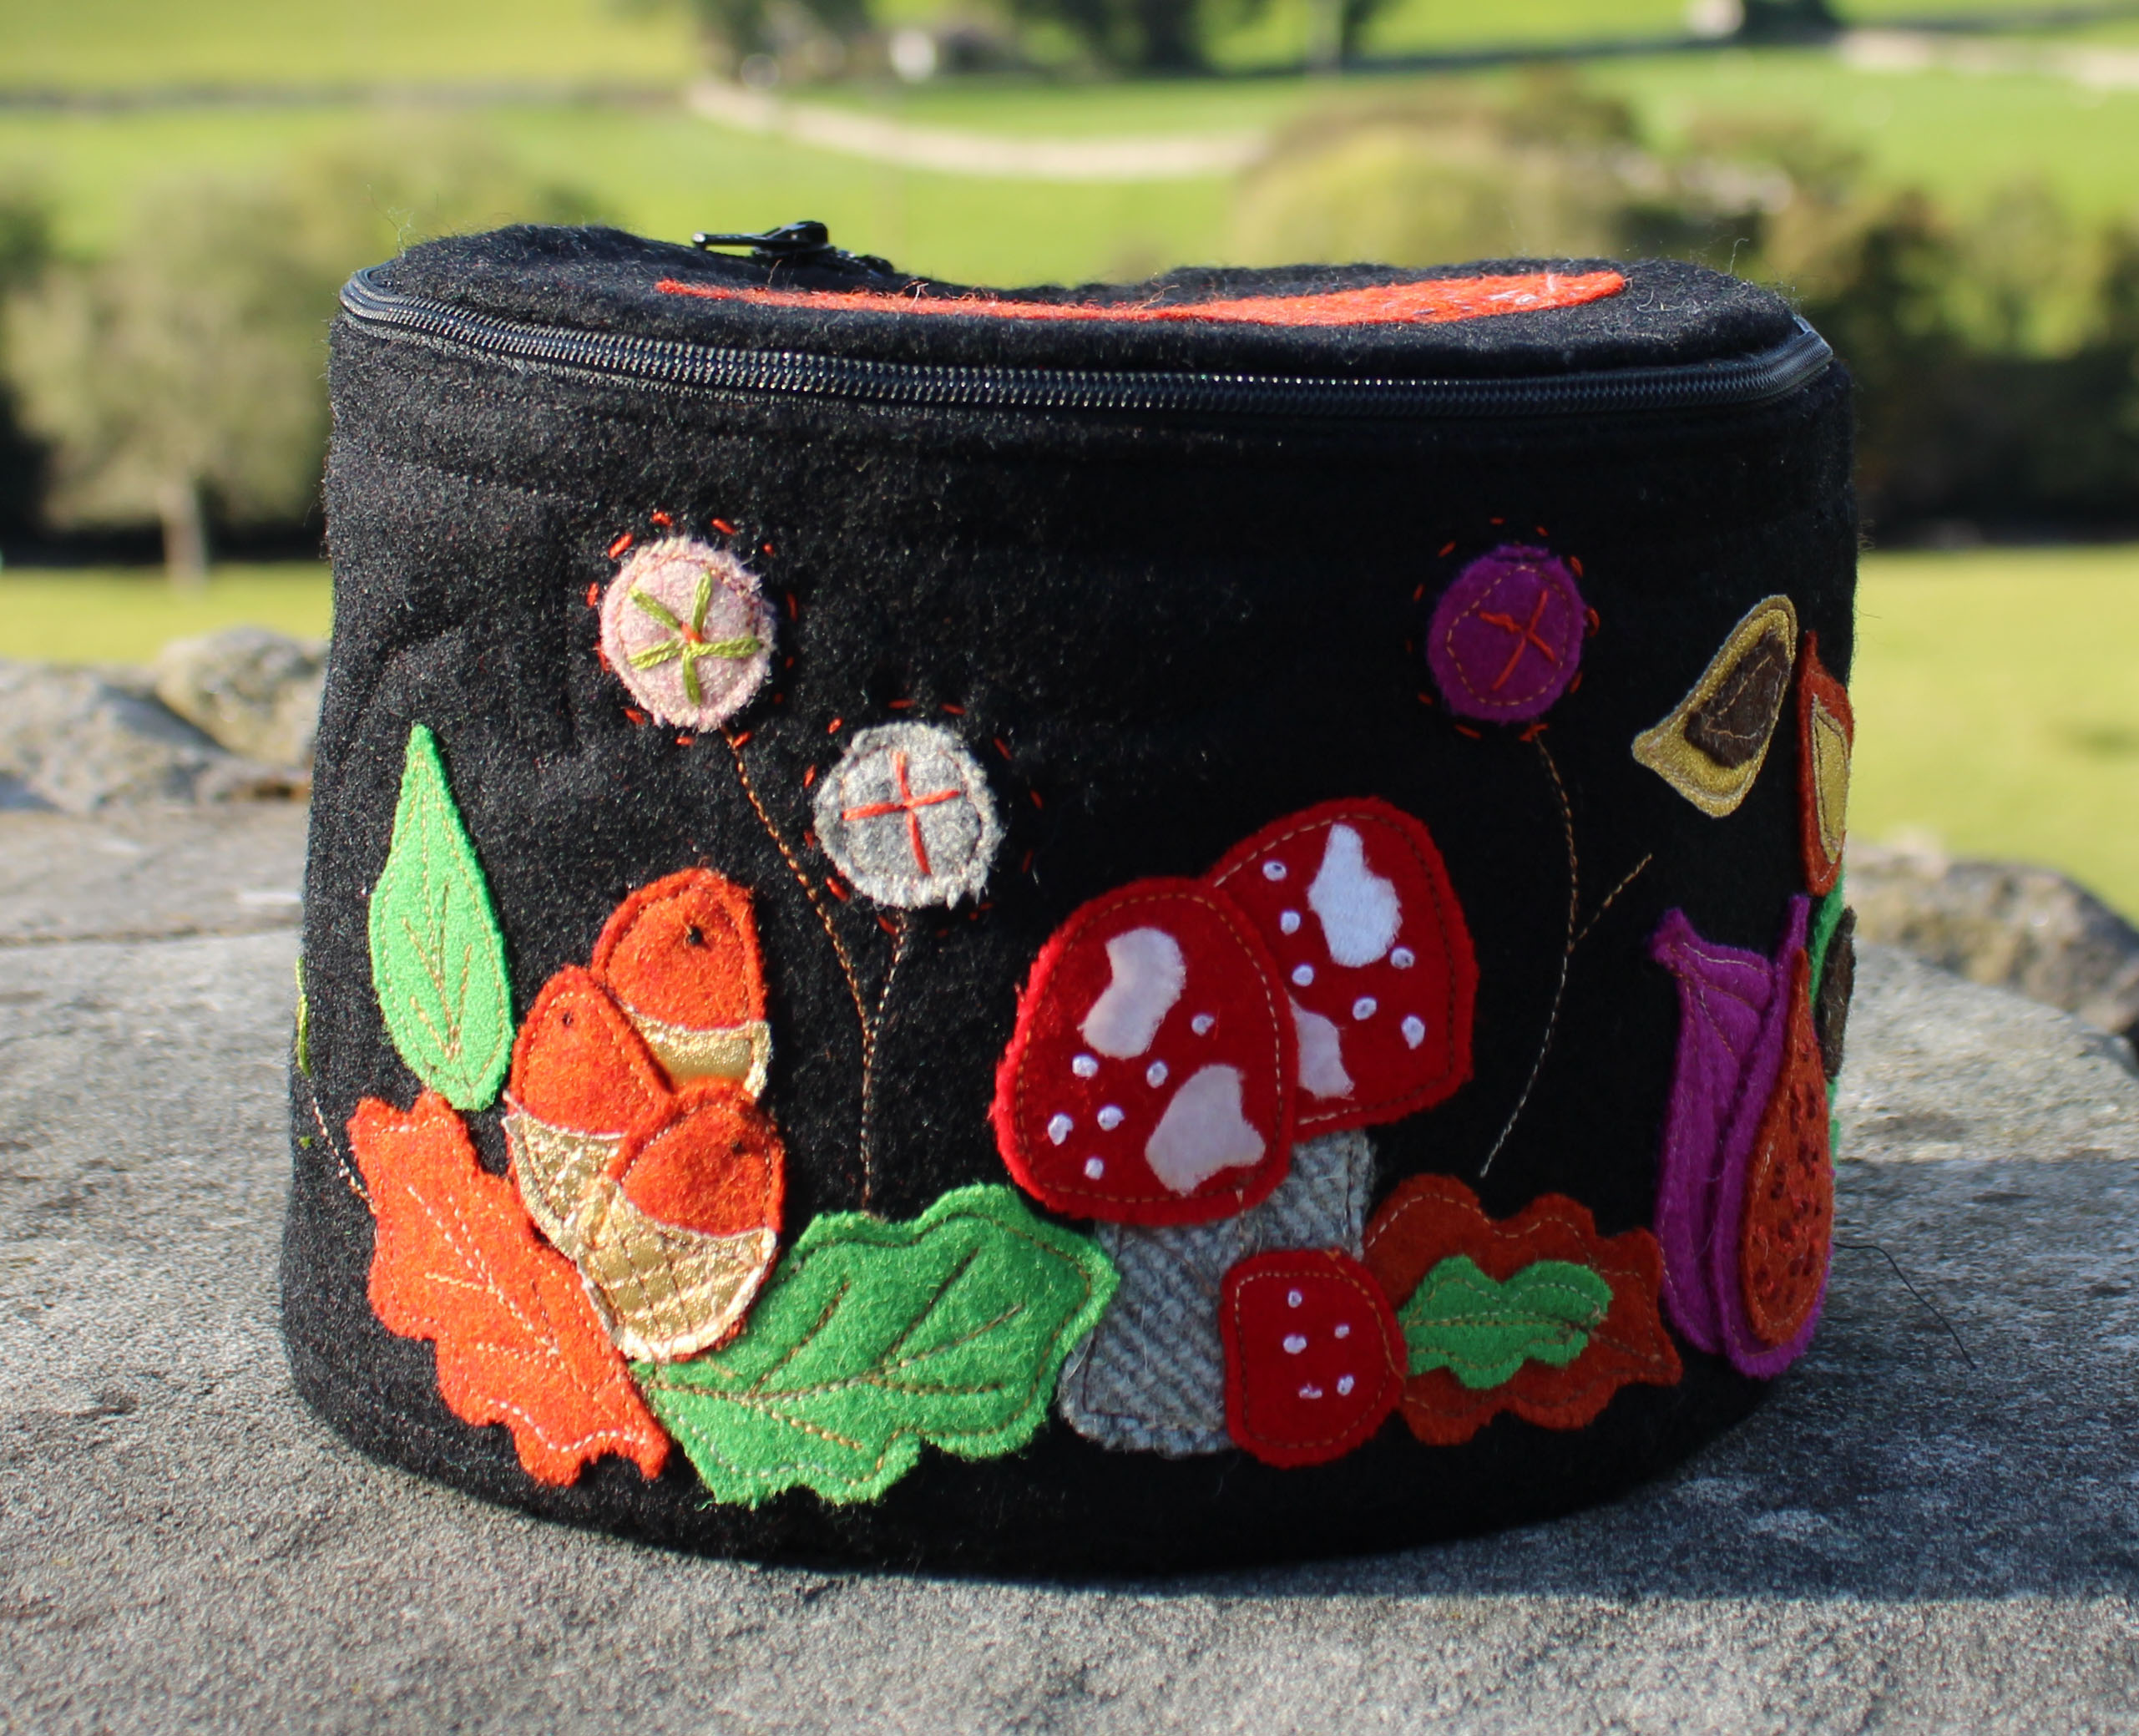 Getting Around, Circular Sewing Case, Sewing Pattern